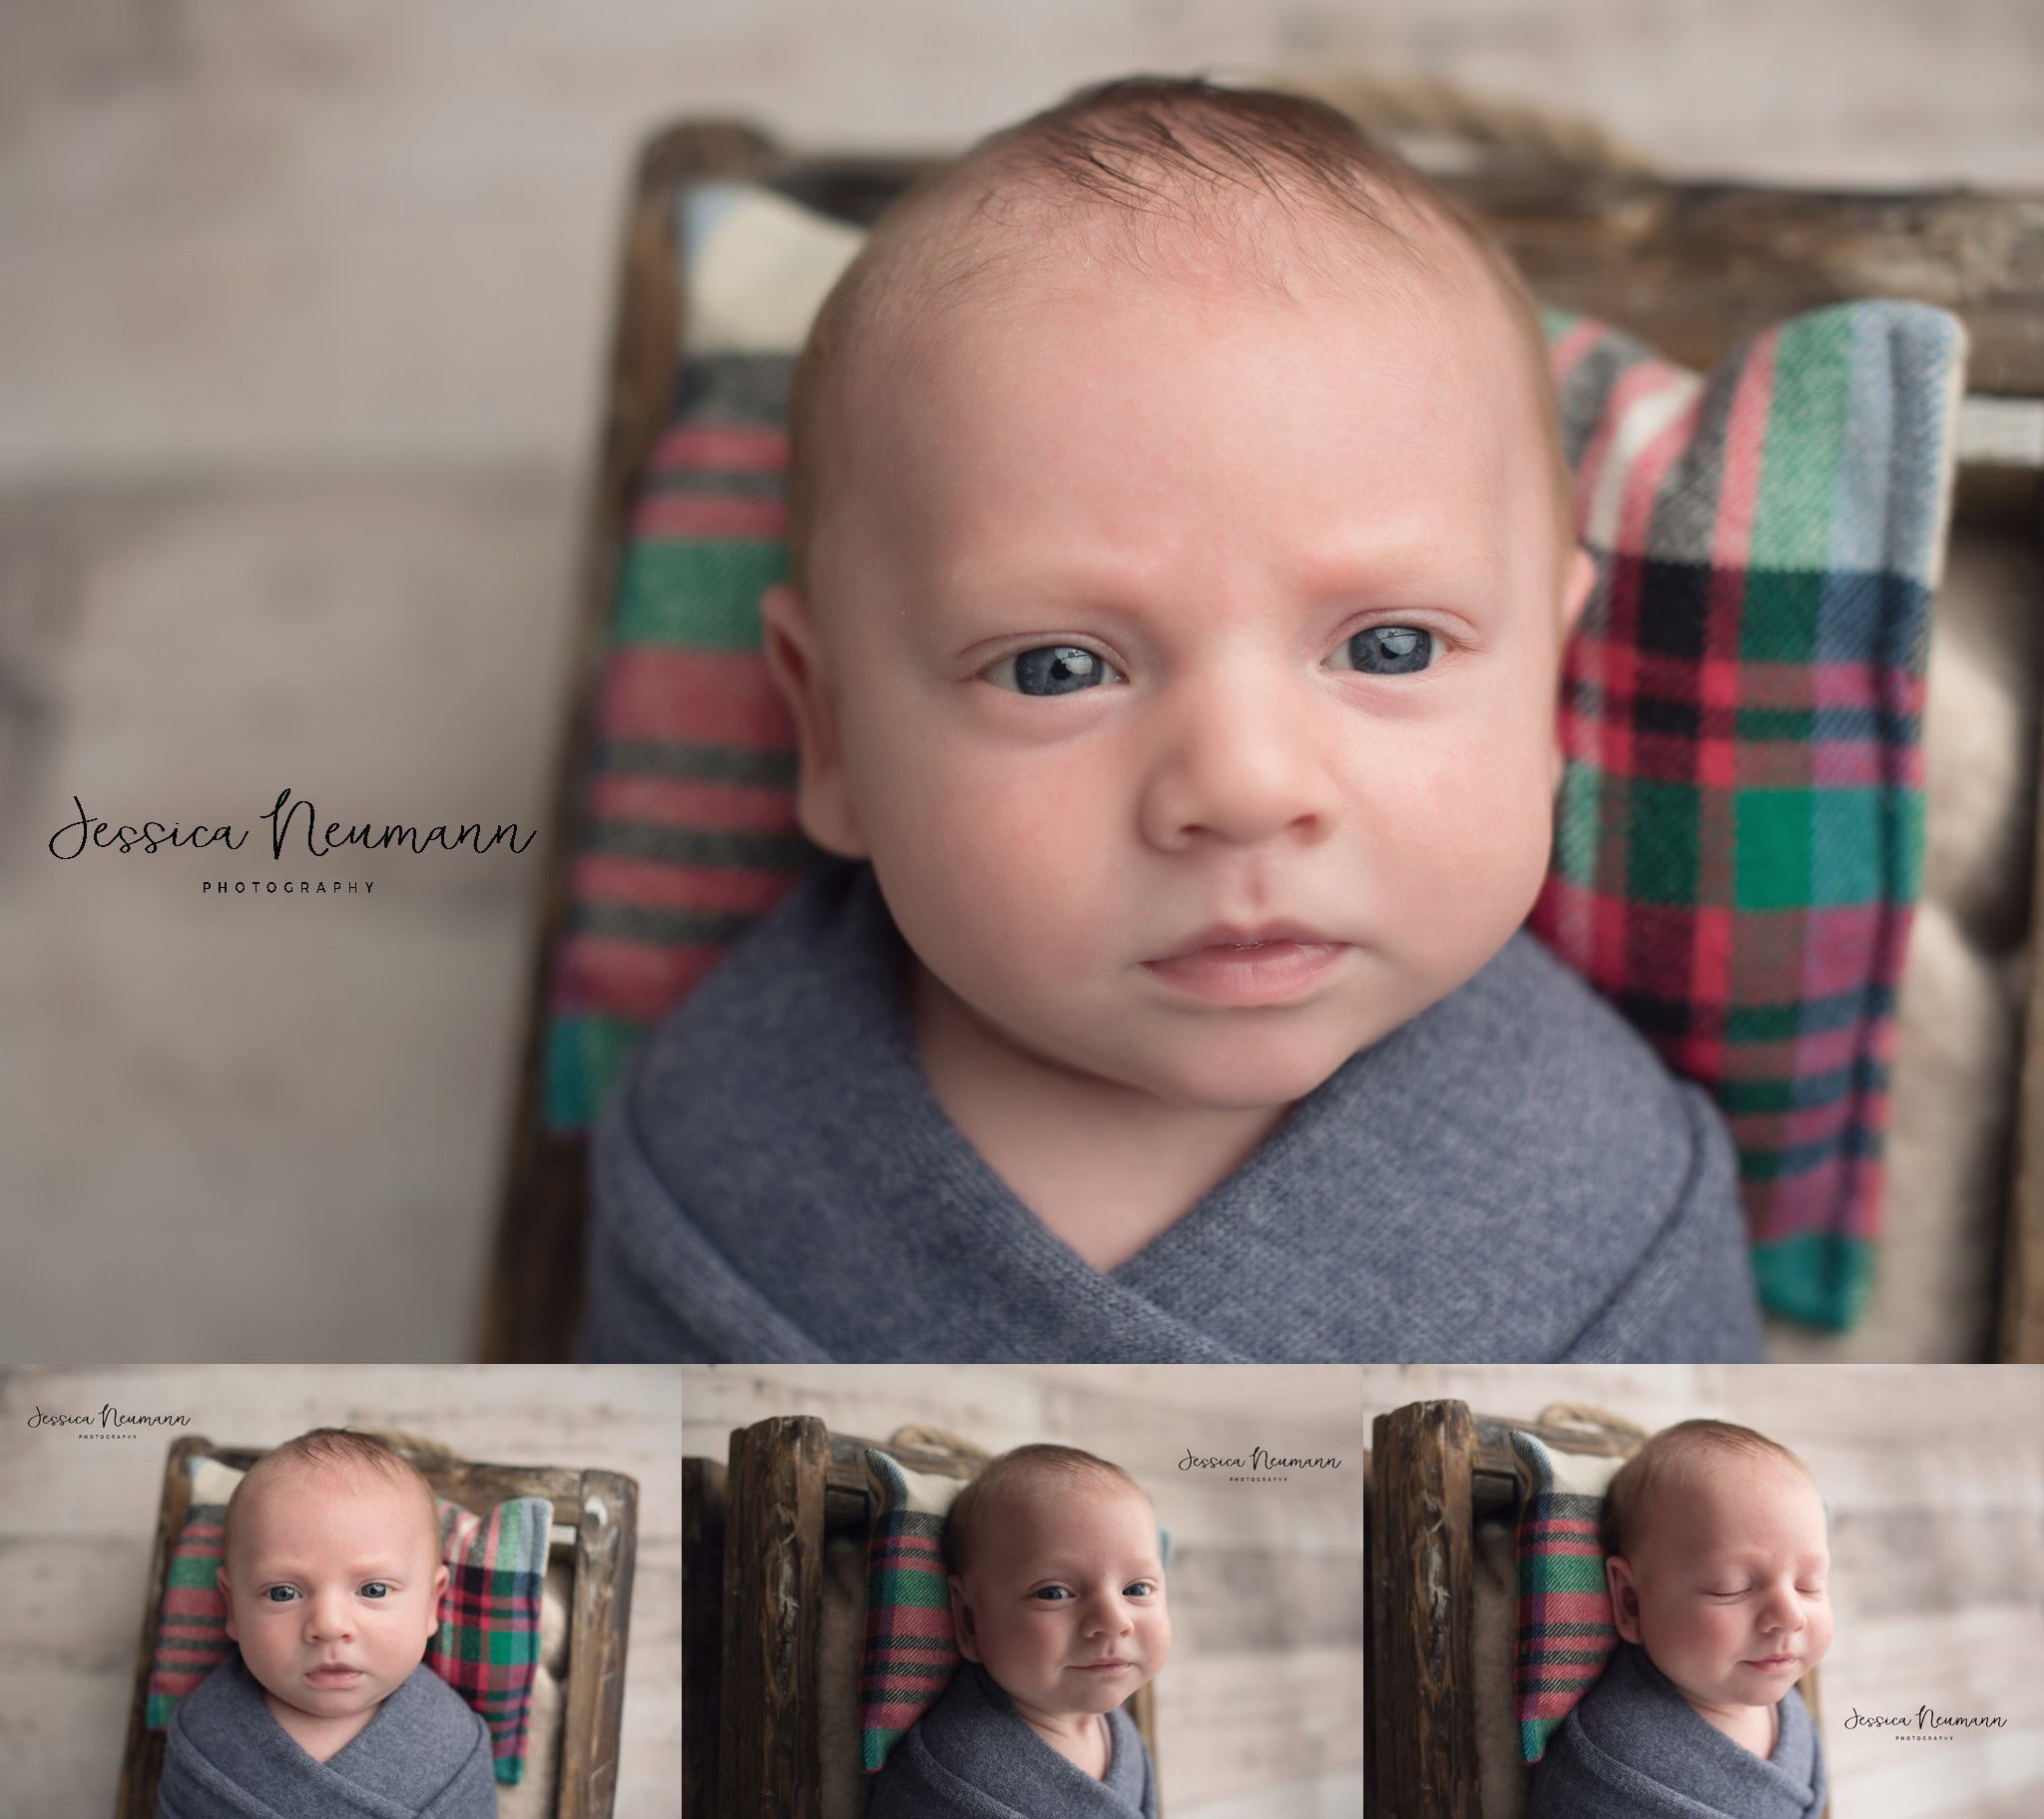 5 week old boy photoshoot in Frederick, MD